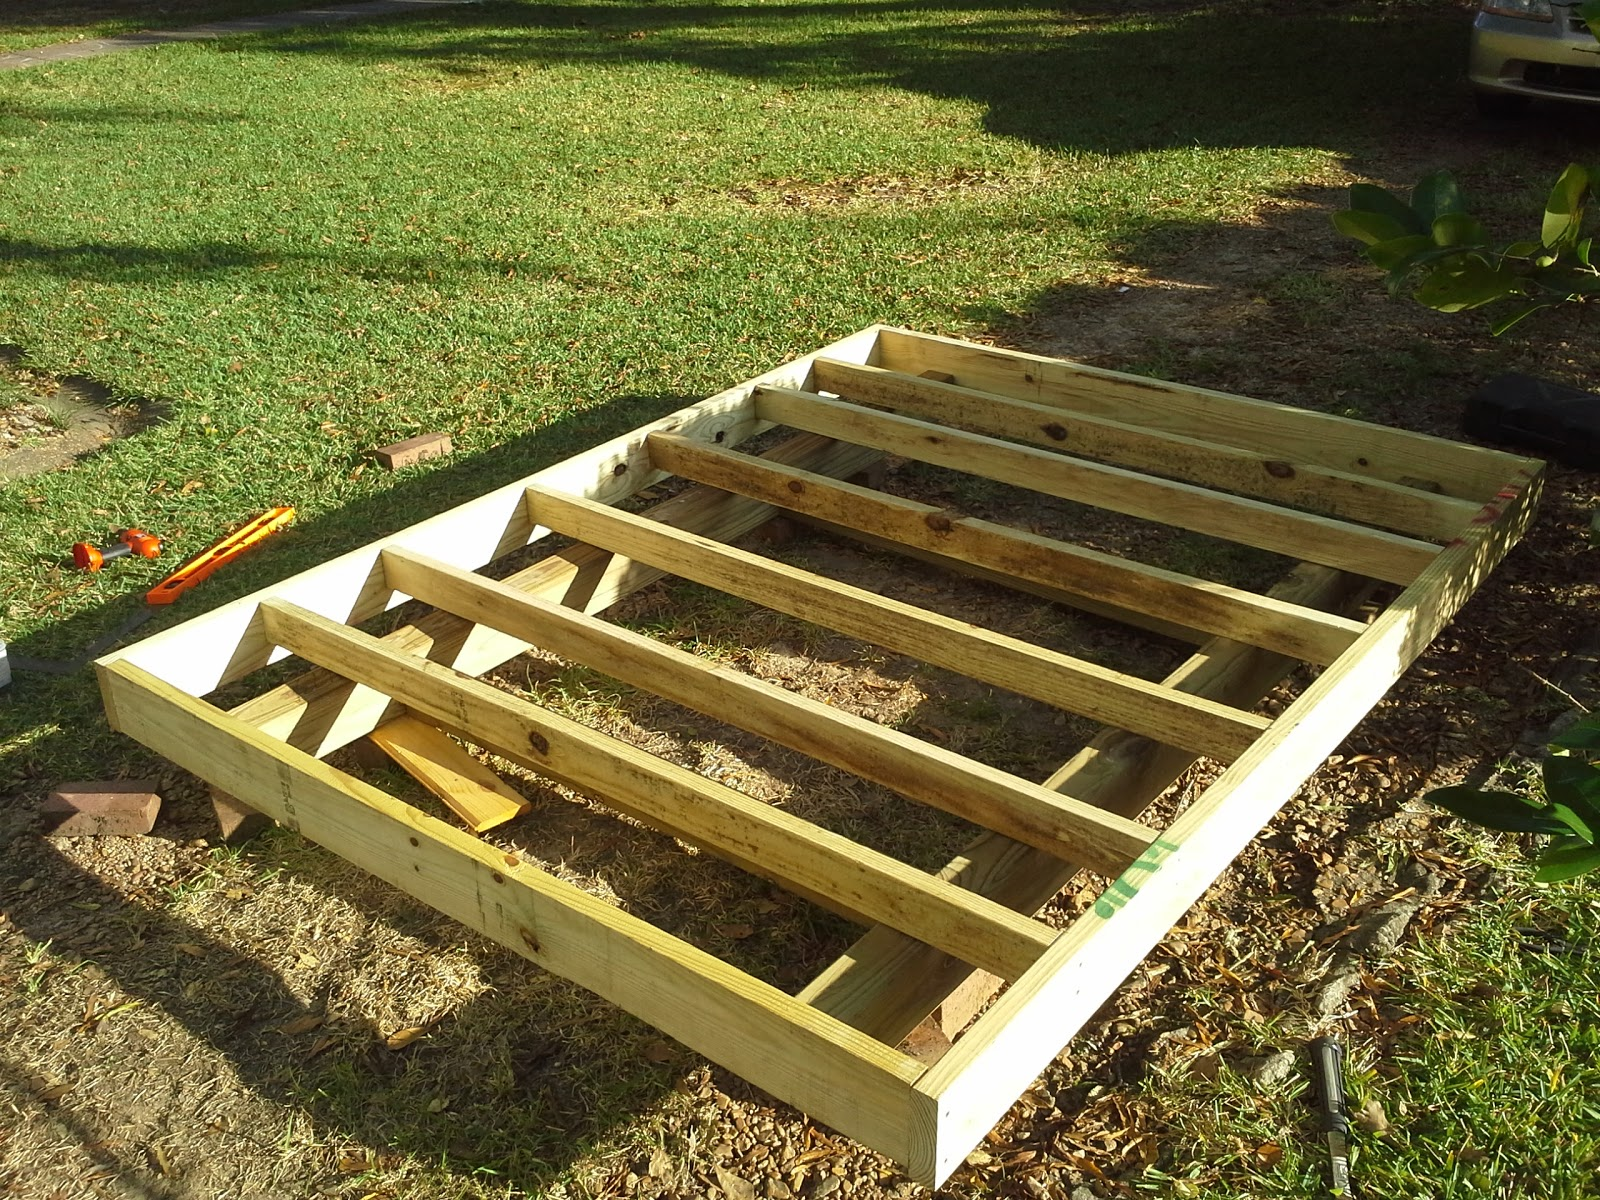 Shed base options for 3.6x6m shed | DIYnot Forums